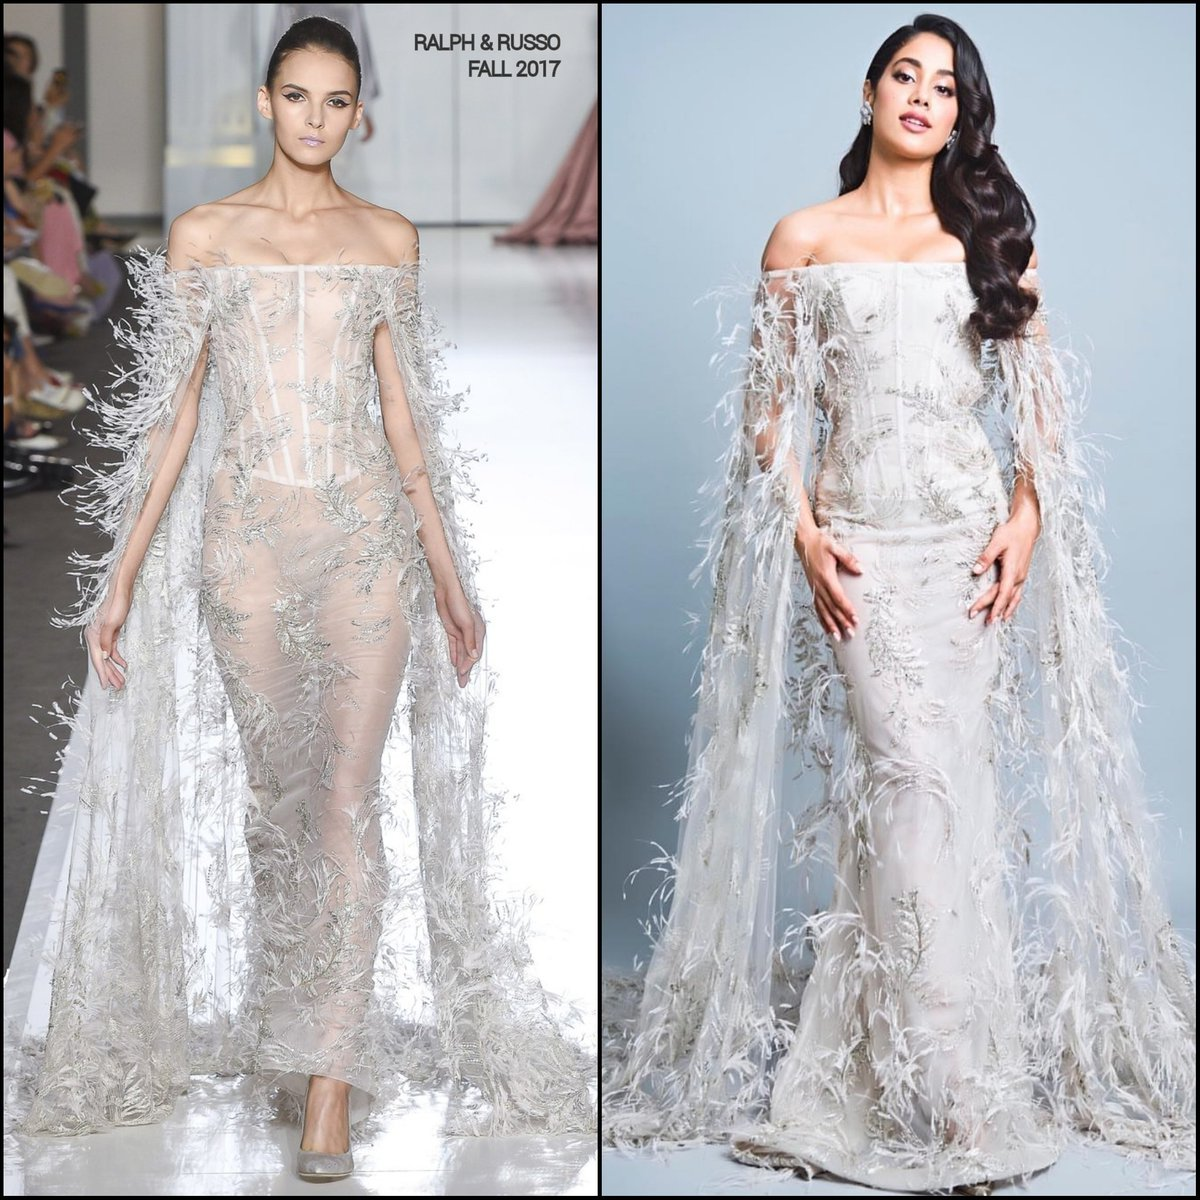 Janhvi-Kapoor-in-Ralph-and-Russo's-Designer-Gown-at-Vogue-Beauty-Awards-2018